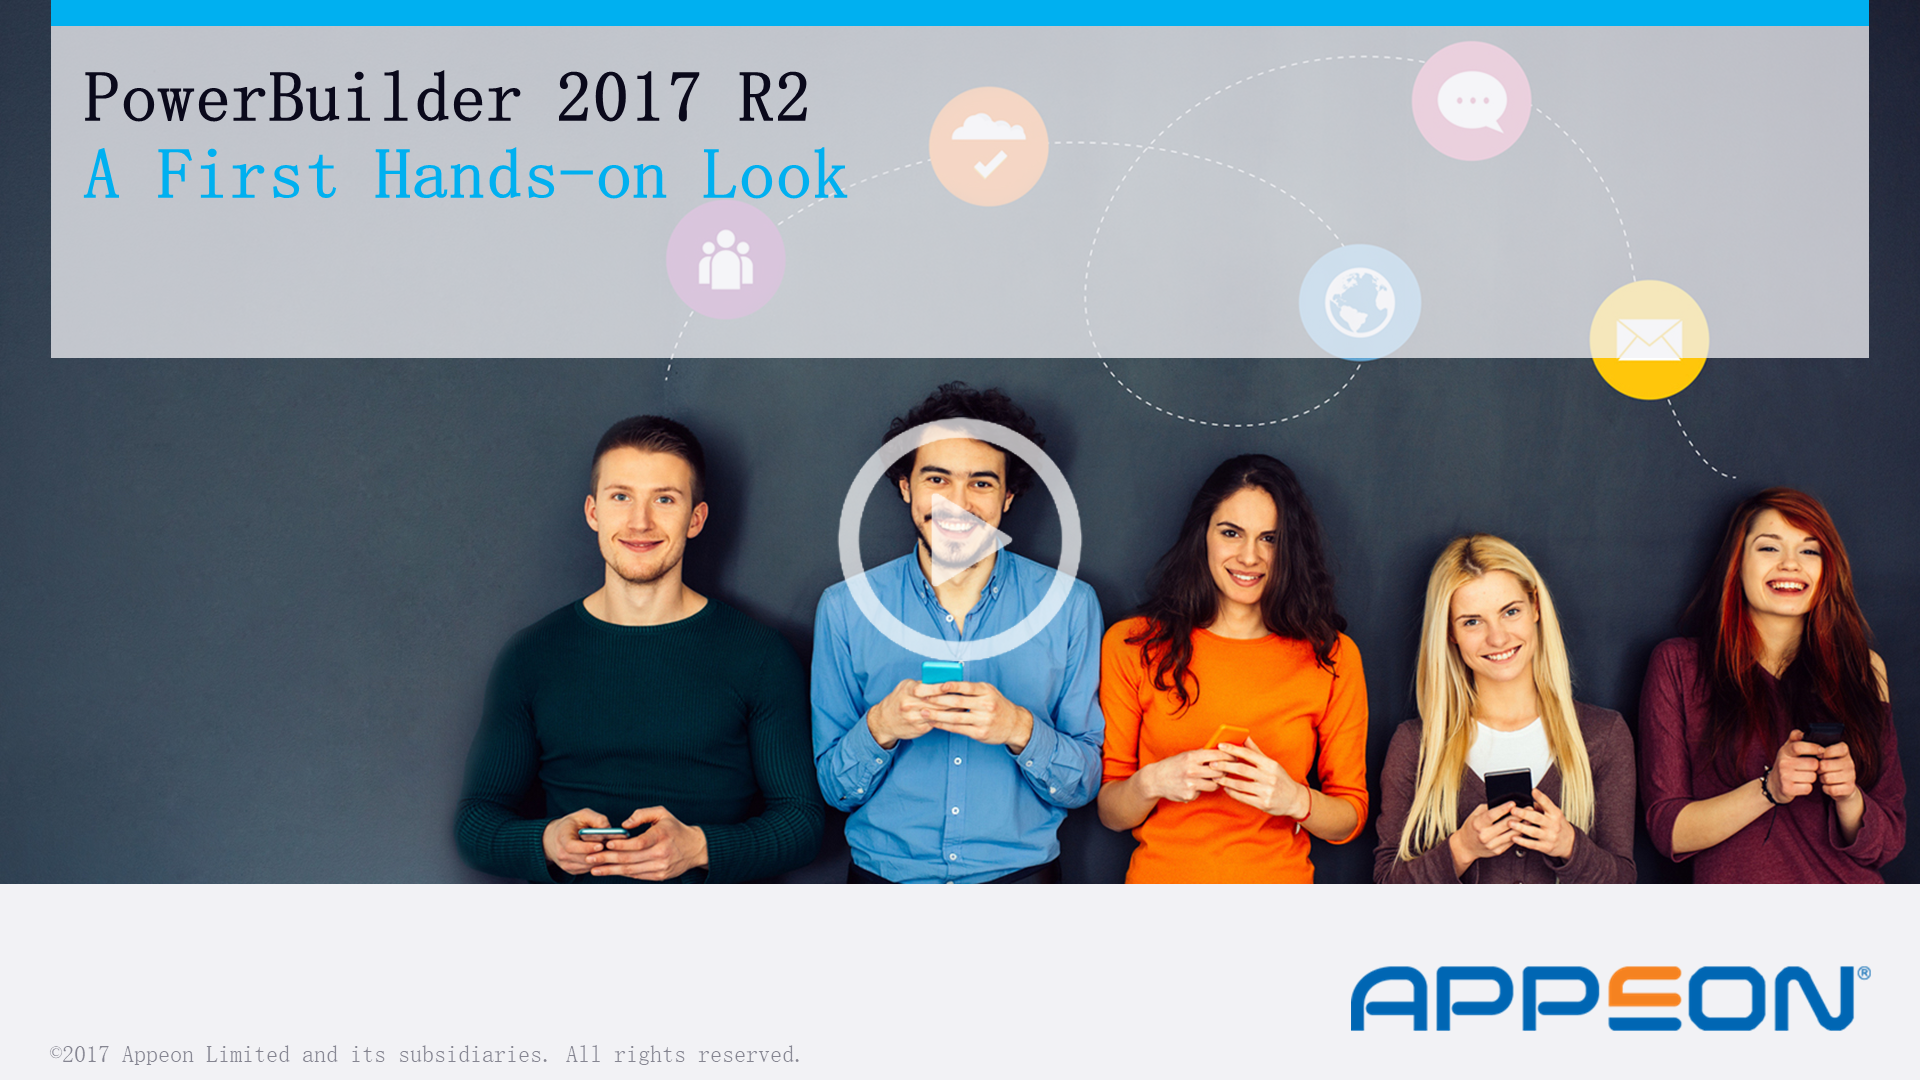 Recorded Webcast: Hands-on Look at PowerBuilder 2017 R2Â